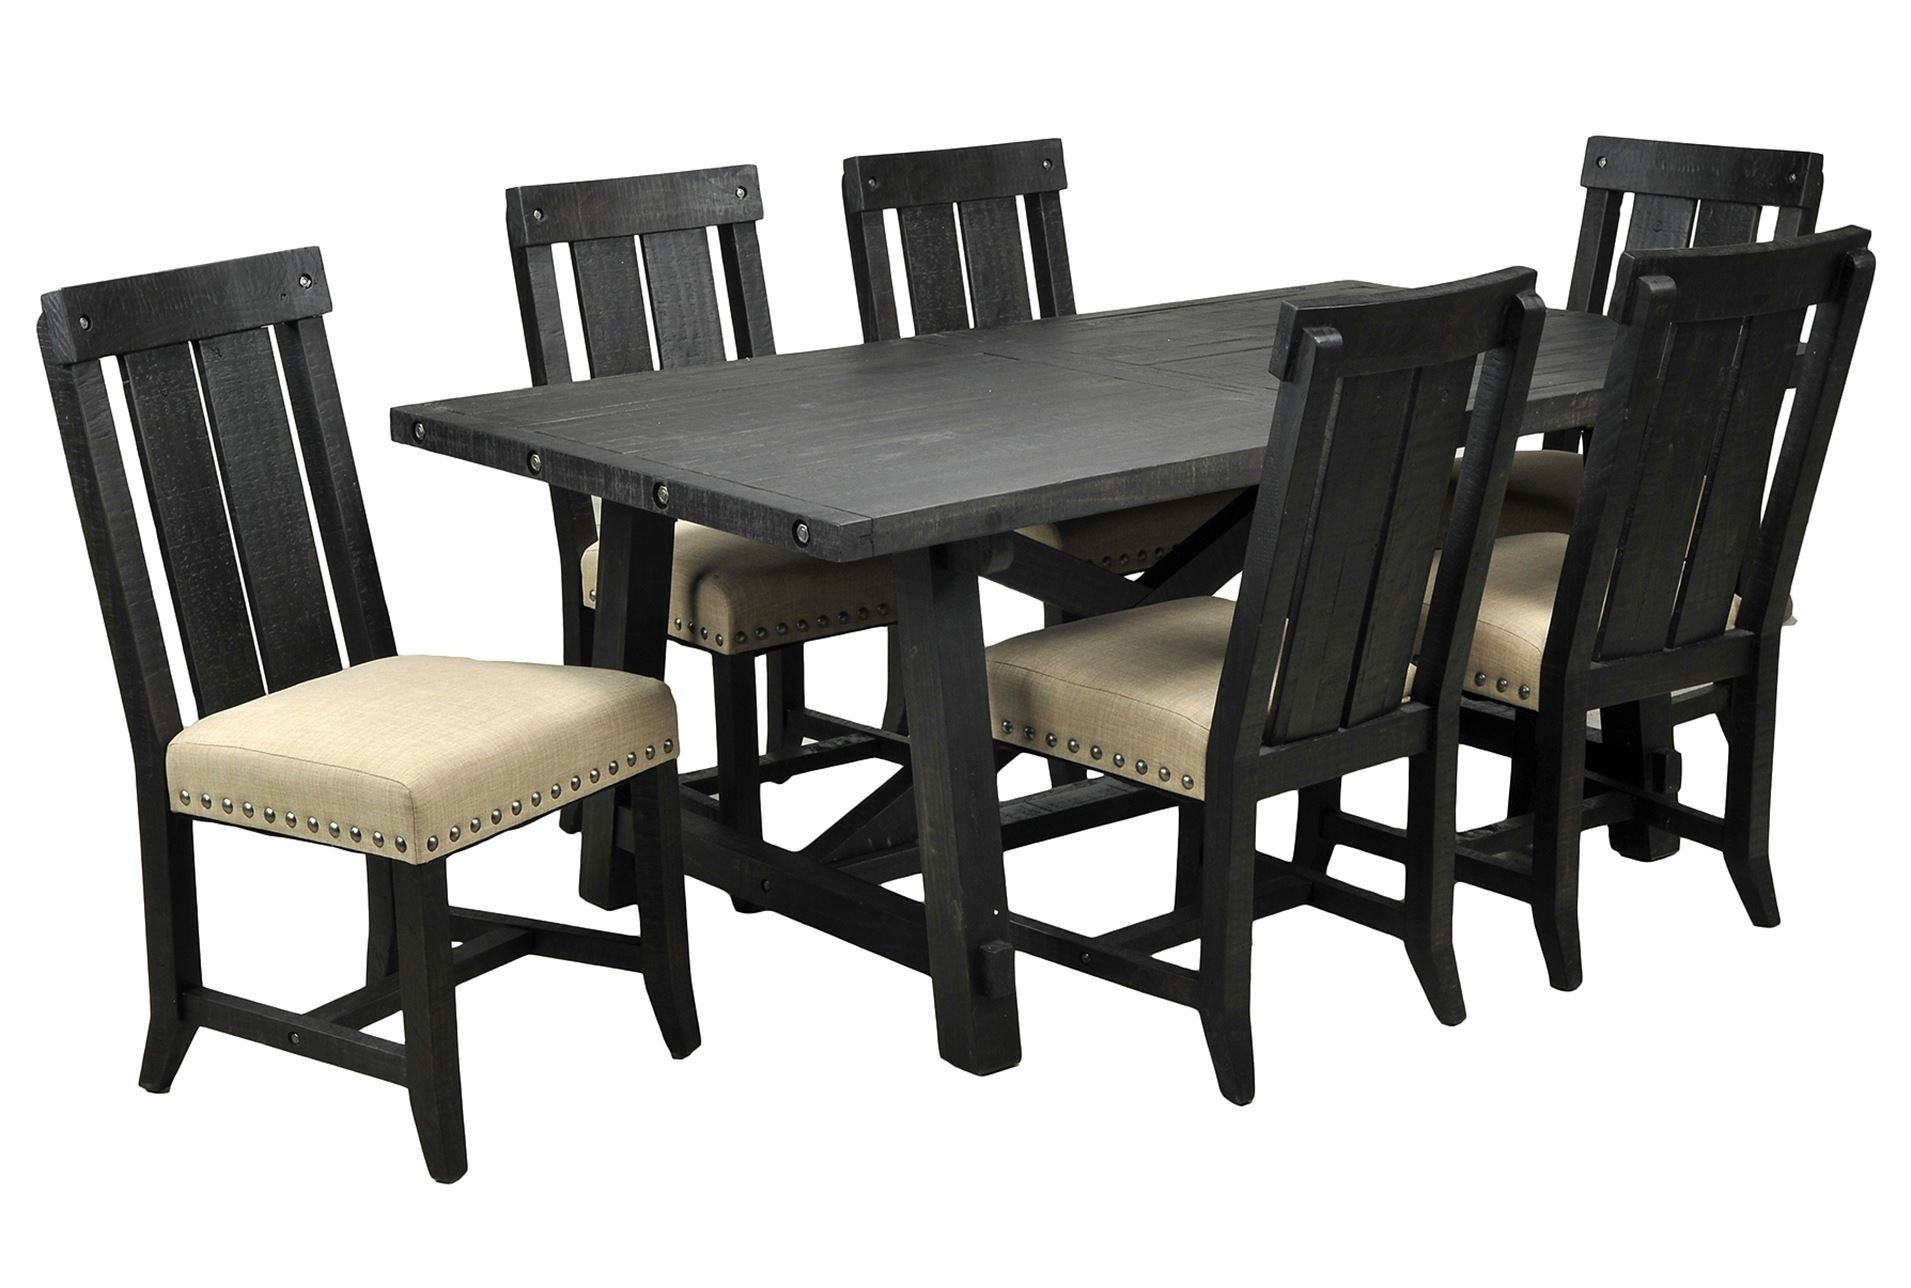 Living Spaces Dining Room Sets Carson Ii 5 Piece Dining Set Living Pertaining To Most Up To Date Jaxon Grey 5 Piece Round Extension Dining Sets With Wood Chairs (Photo 18 of 20)